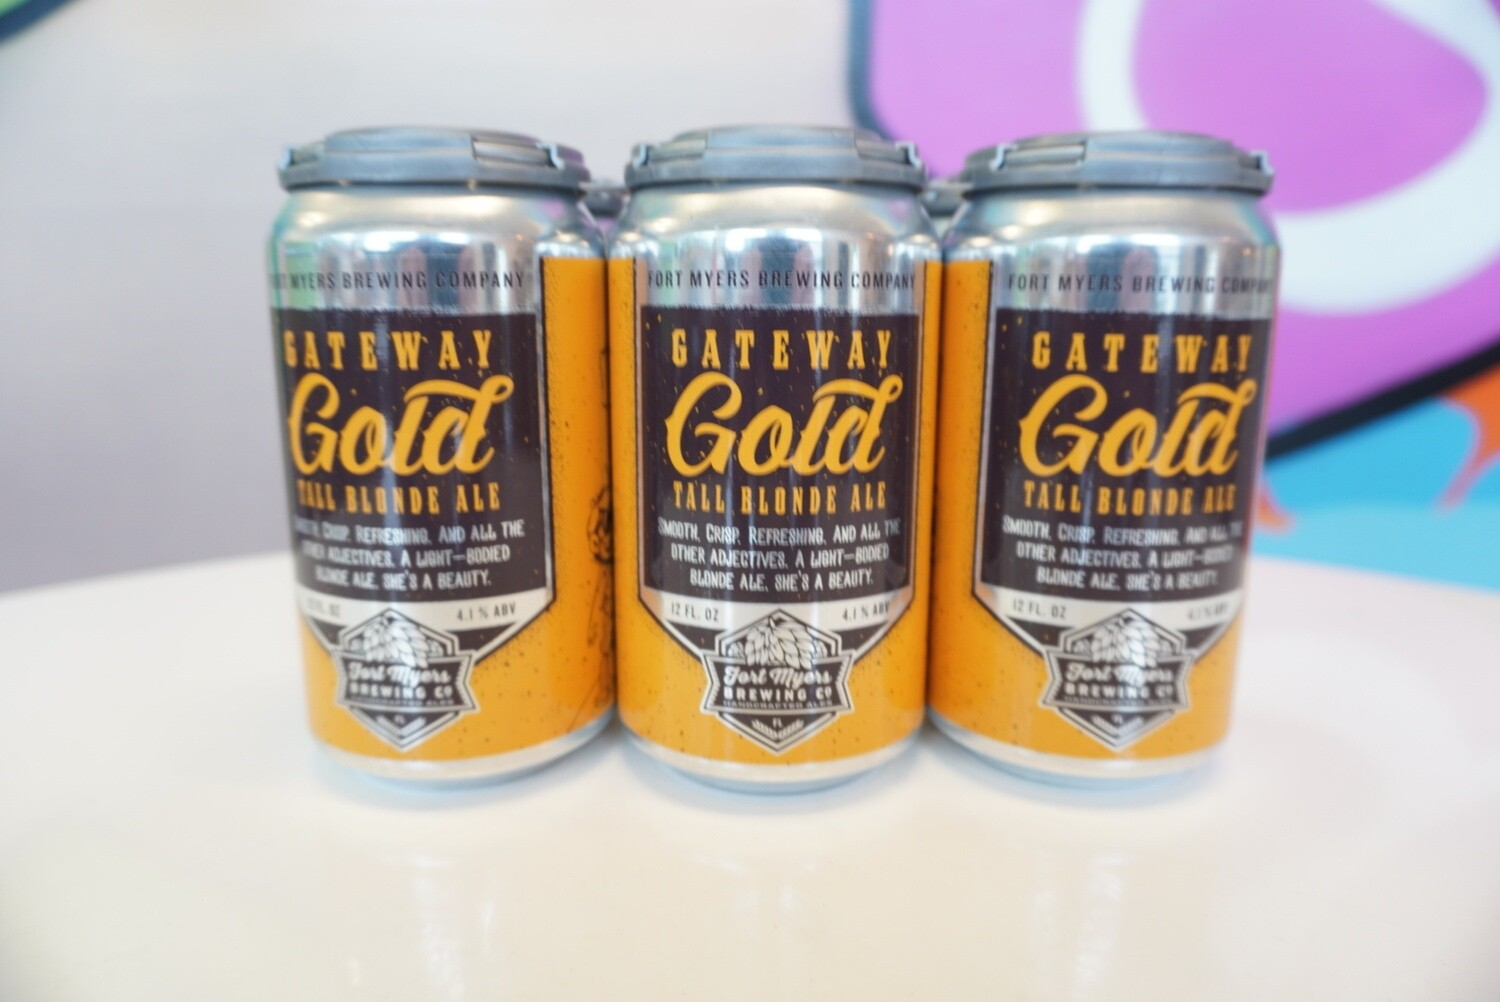 Fort Myers Brewing - Gateway Gold Ale - Blonde - 4.1% ABV - 6 Pack